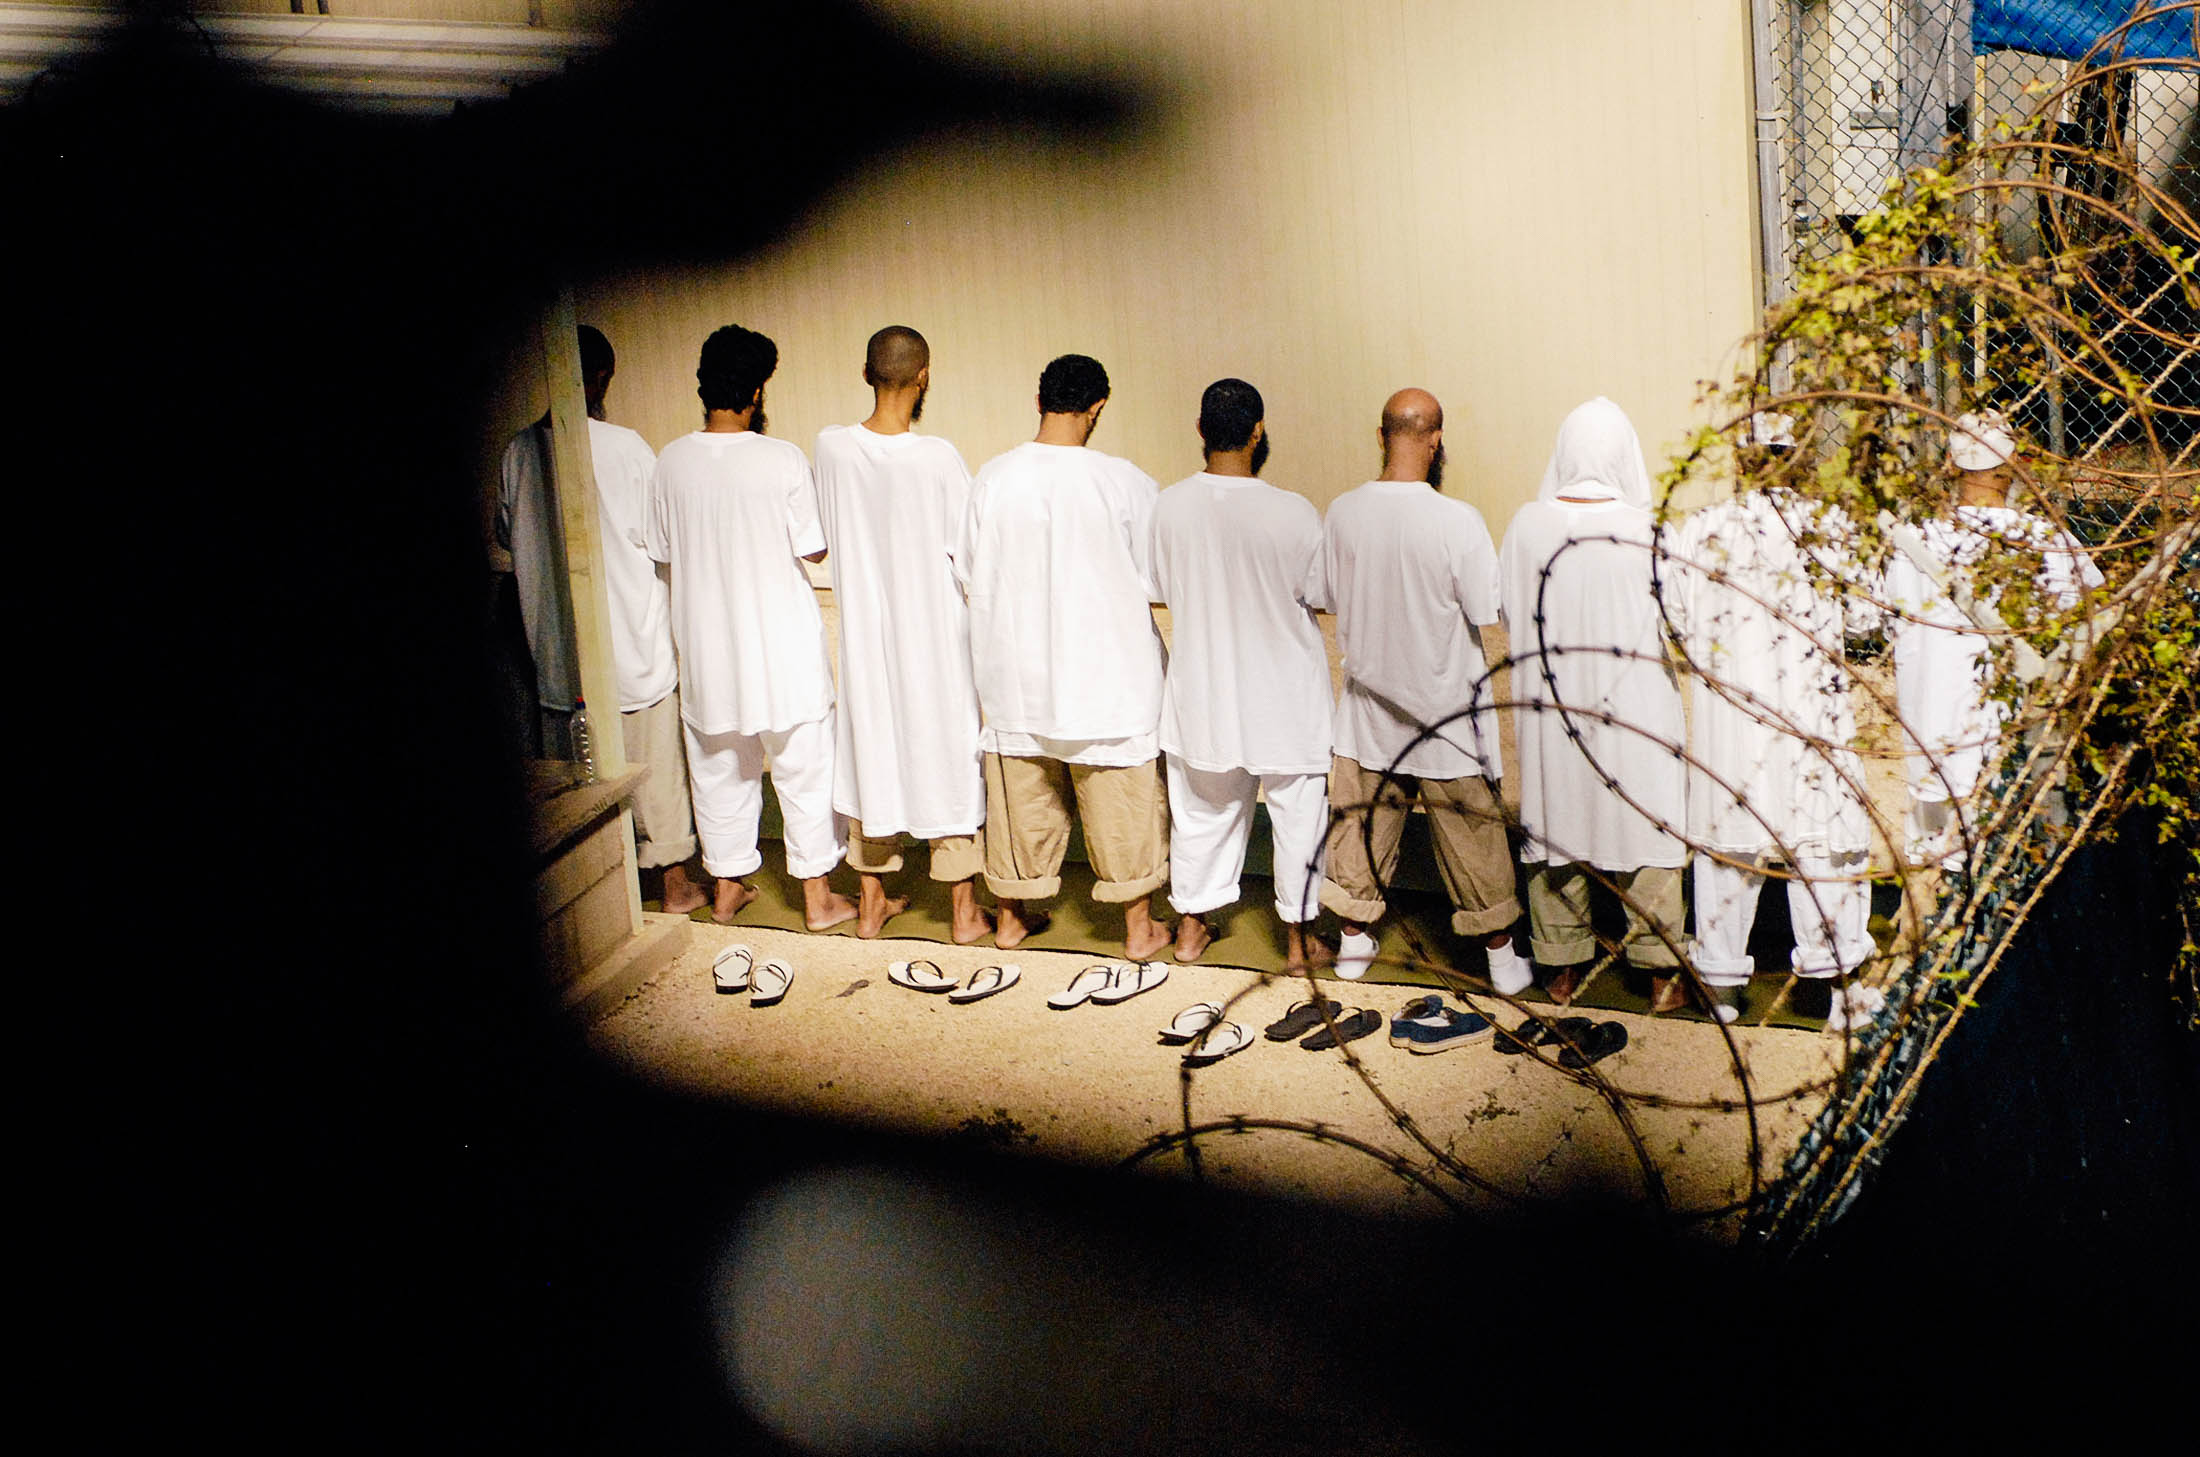 A group of detainees observe morning prayer before sunrise at Guantanamo Bay in an Oct. 28, 2009 file photo provided by the Department of Defense.